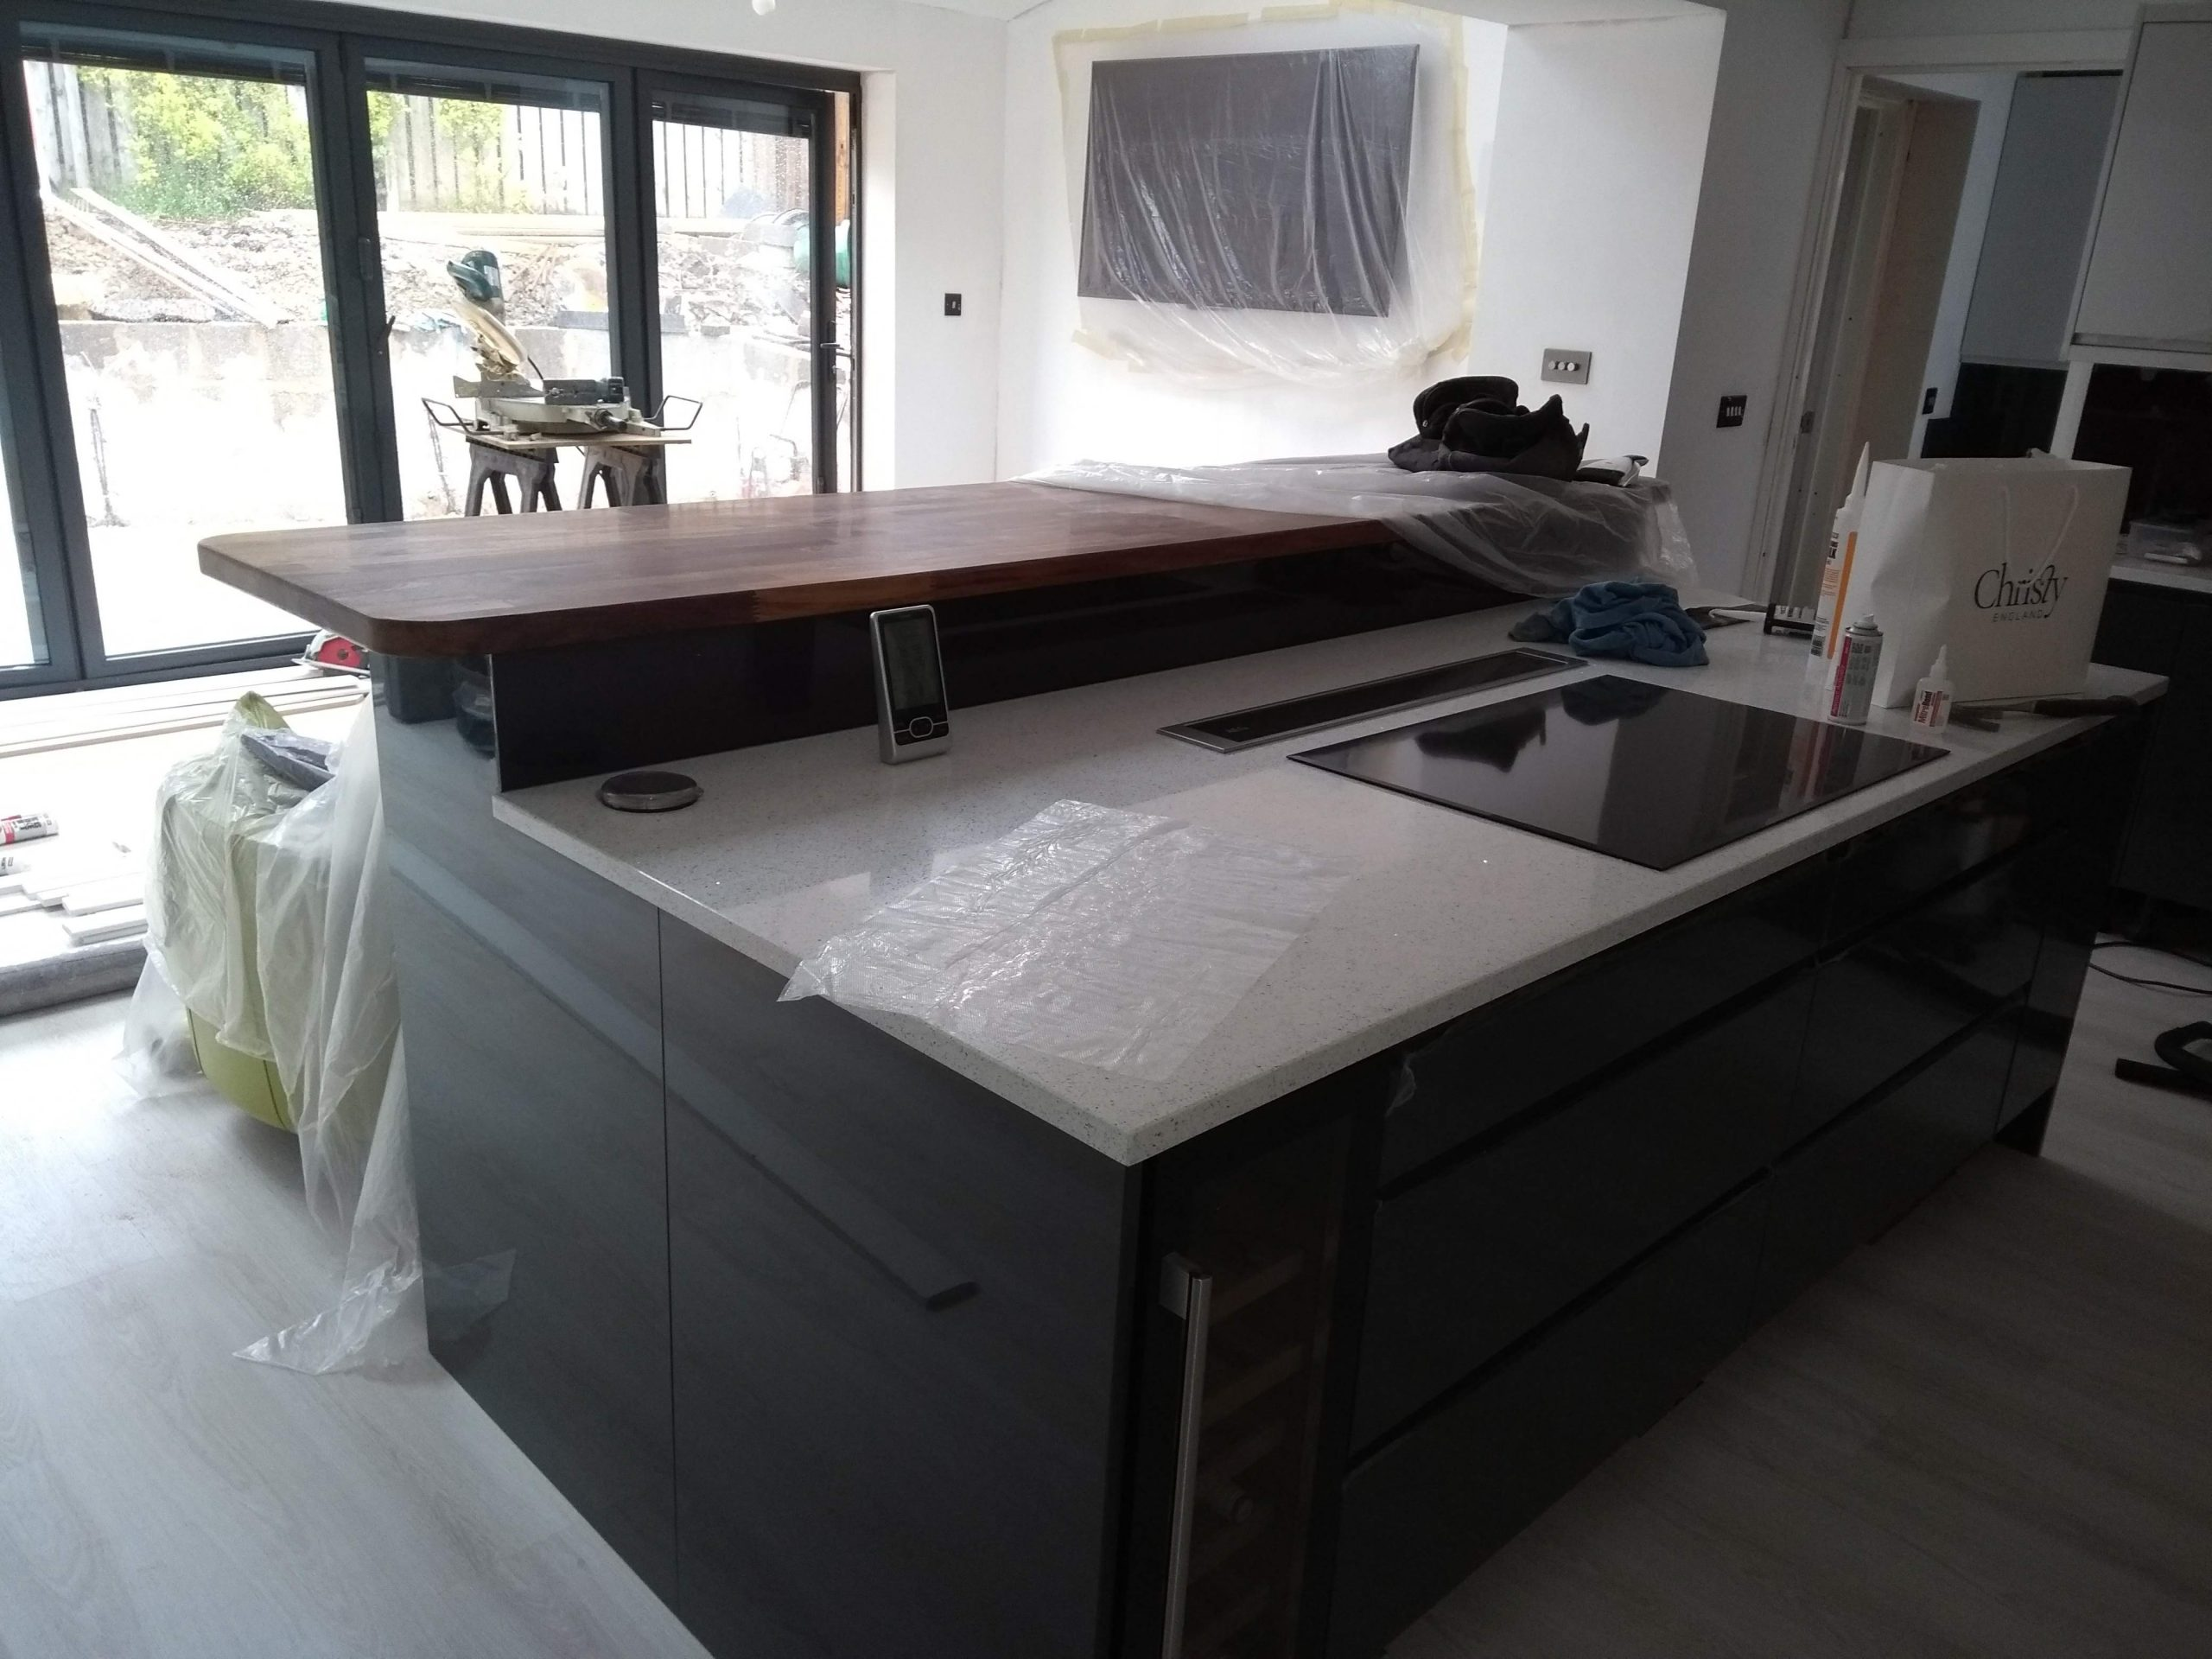 Kitchen Fitter Castleford   CL Joinery